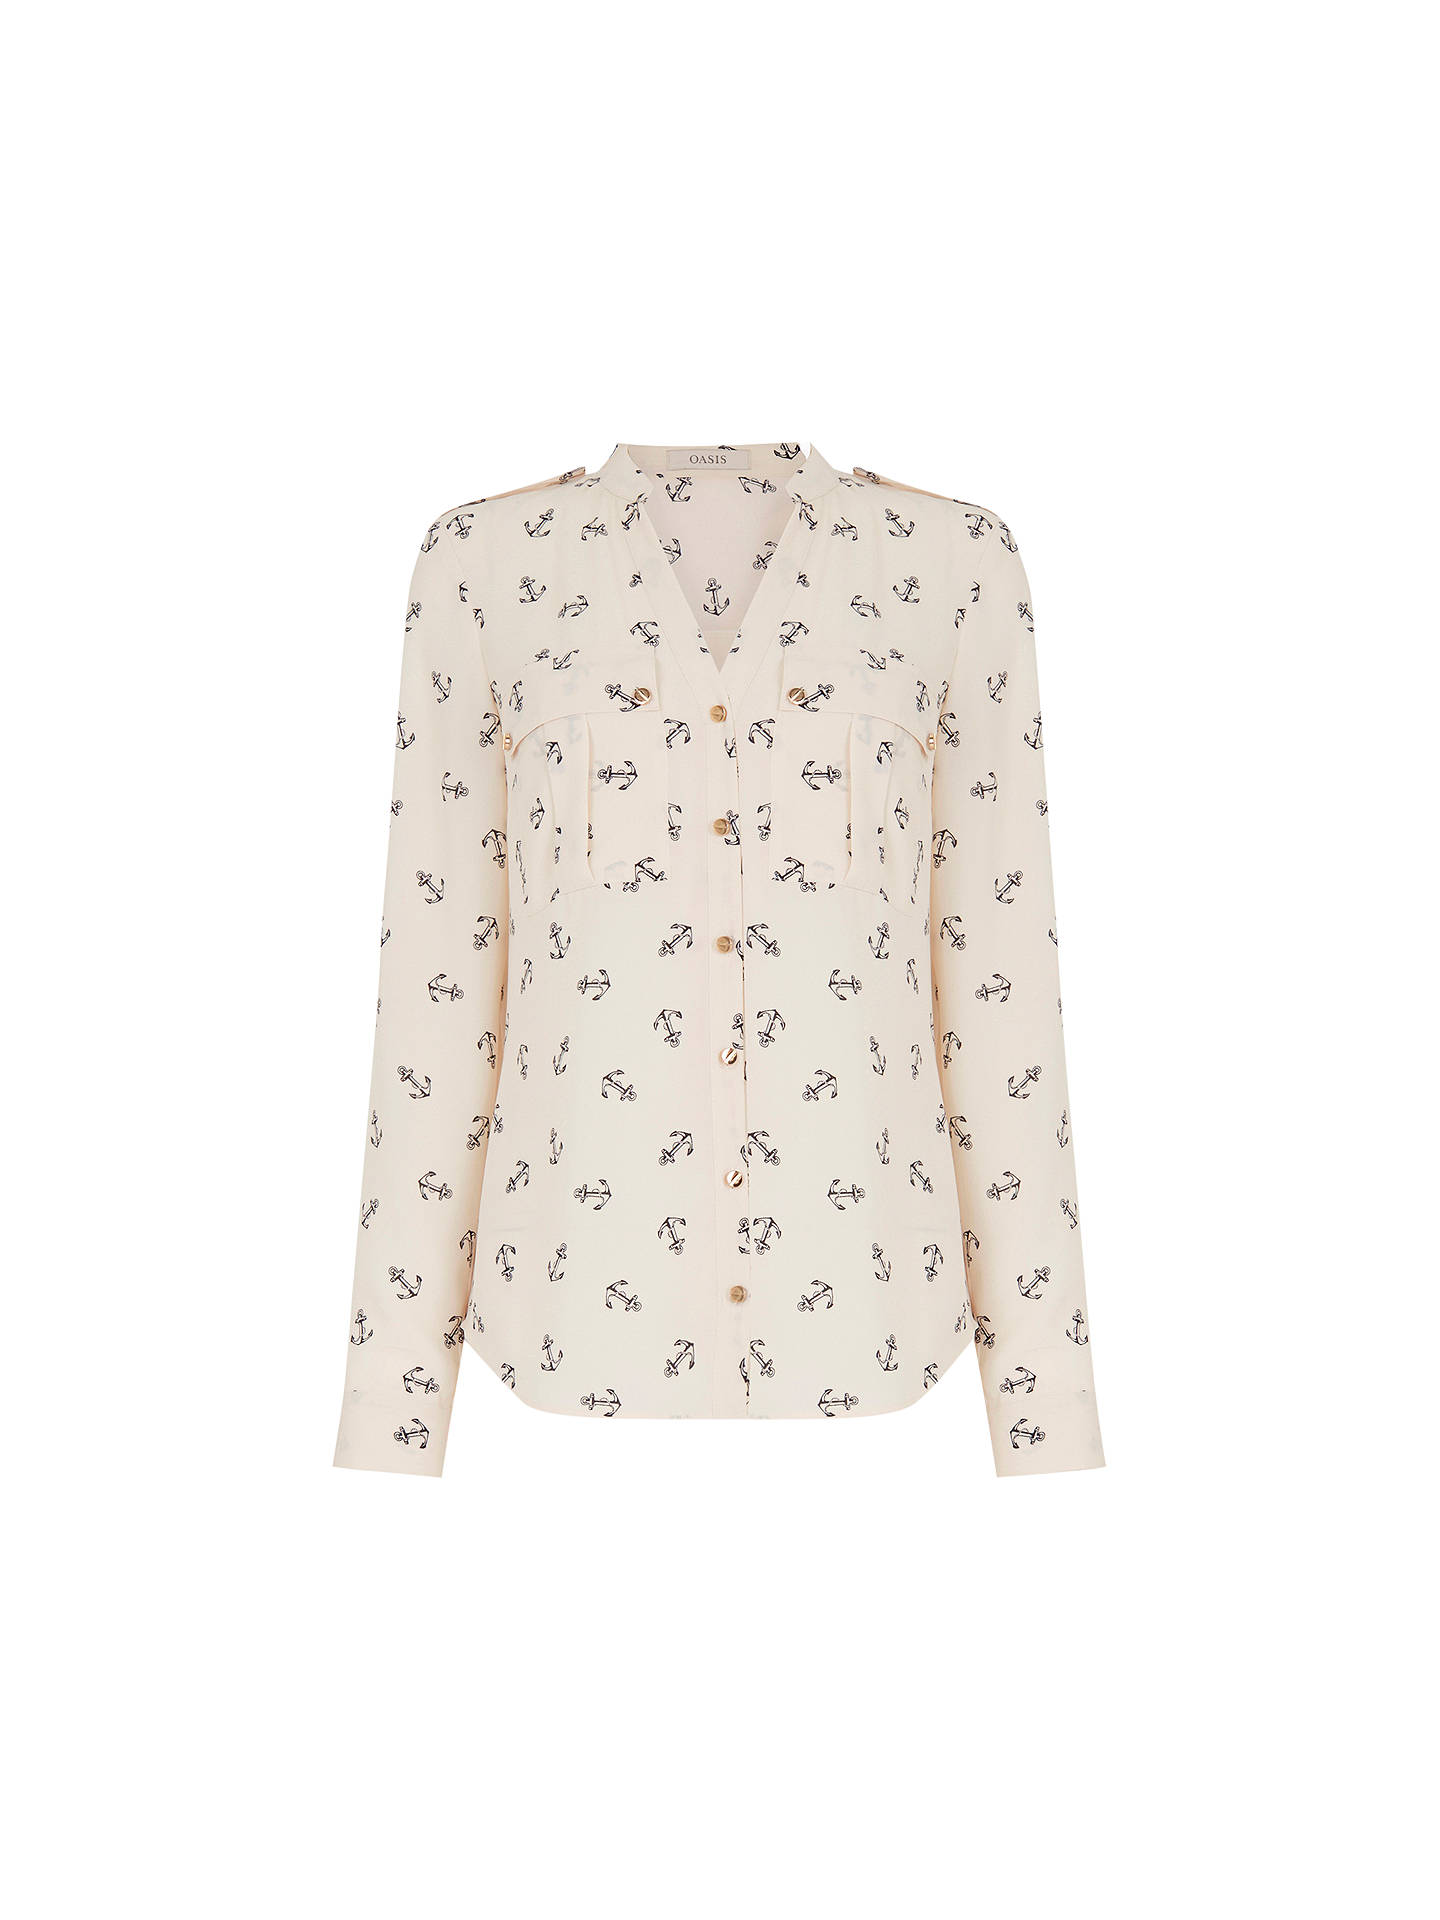 56b73156b7d6 Buy Oasis Anchor Print Shirt, Natural, 8 Online at johnlewis.com ...